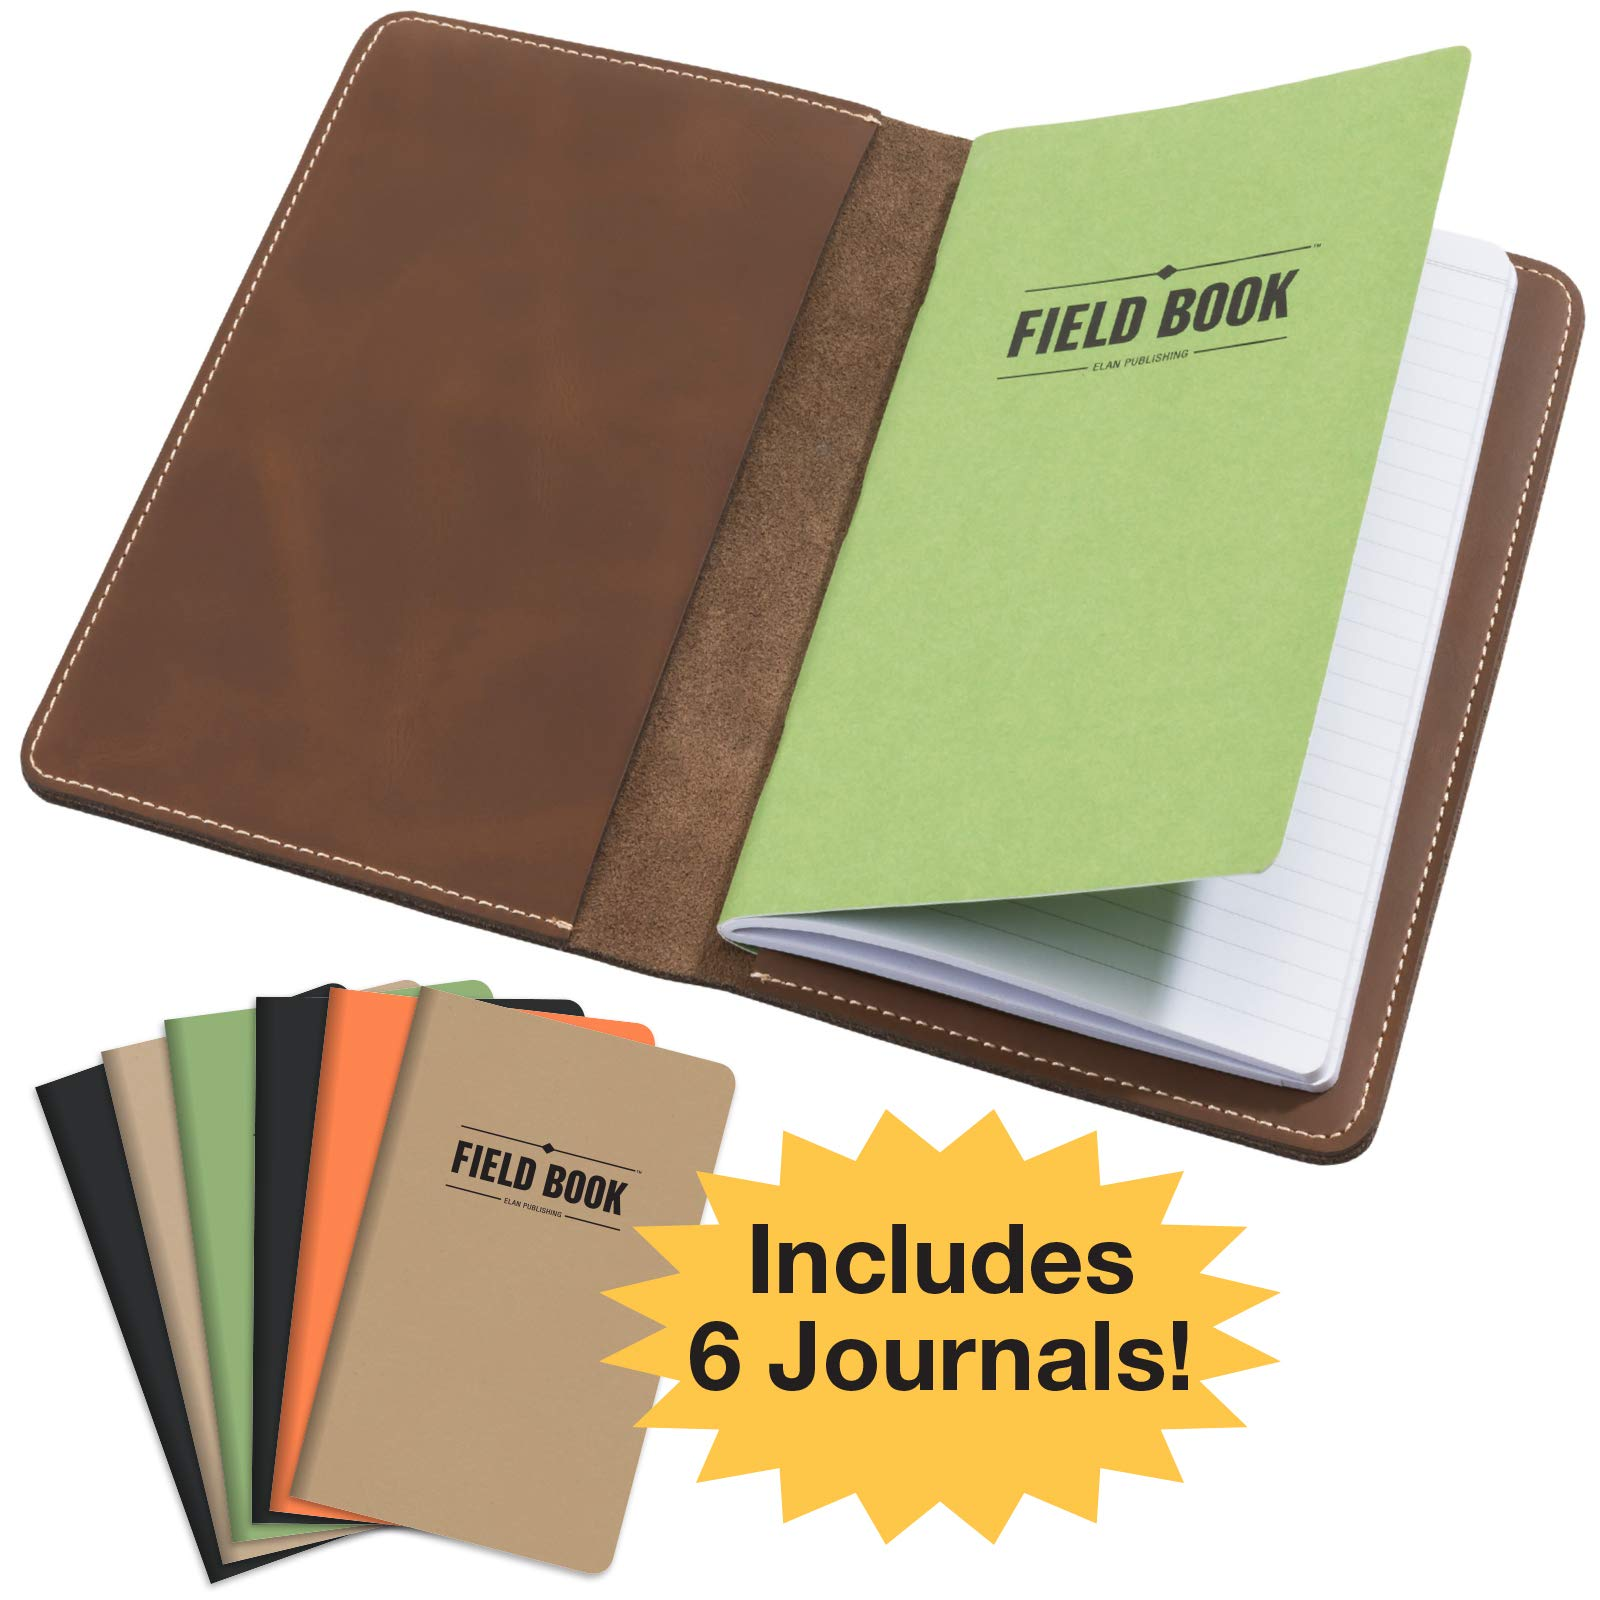 Handcrafted Stitched Leather Journal Notebook Cover with Inside Pocket: Includes 6 Bonus Refillable Field Note Book Journals/Compatible with Field Notes and Moleskine Cahier Notebook (5x8 - Medium)